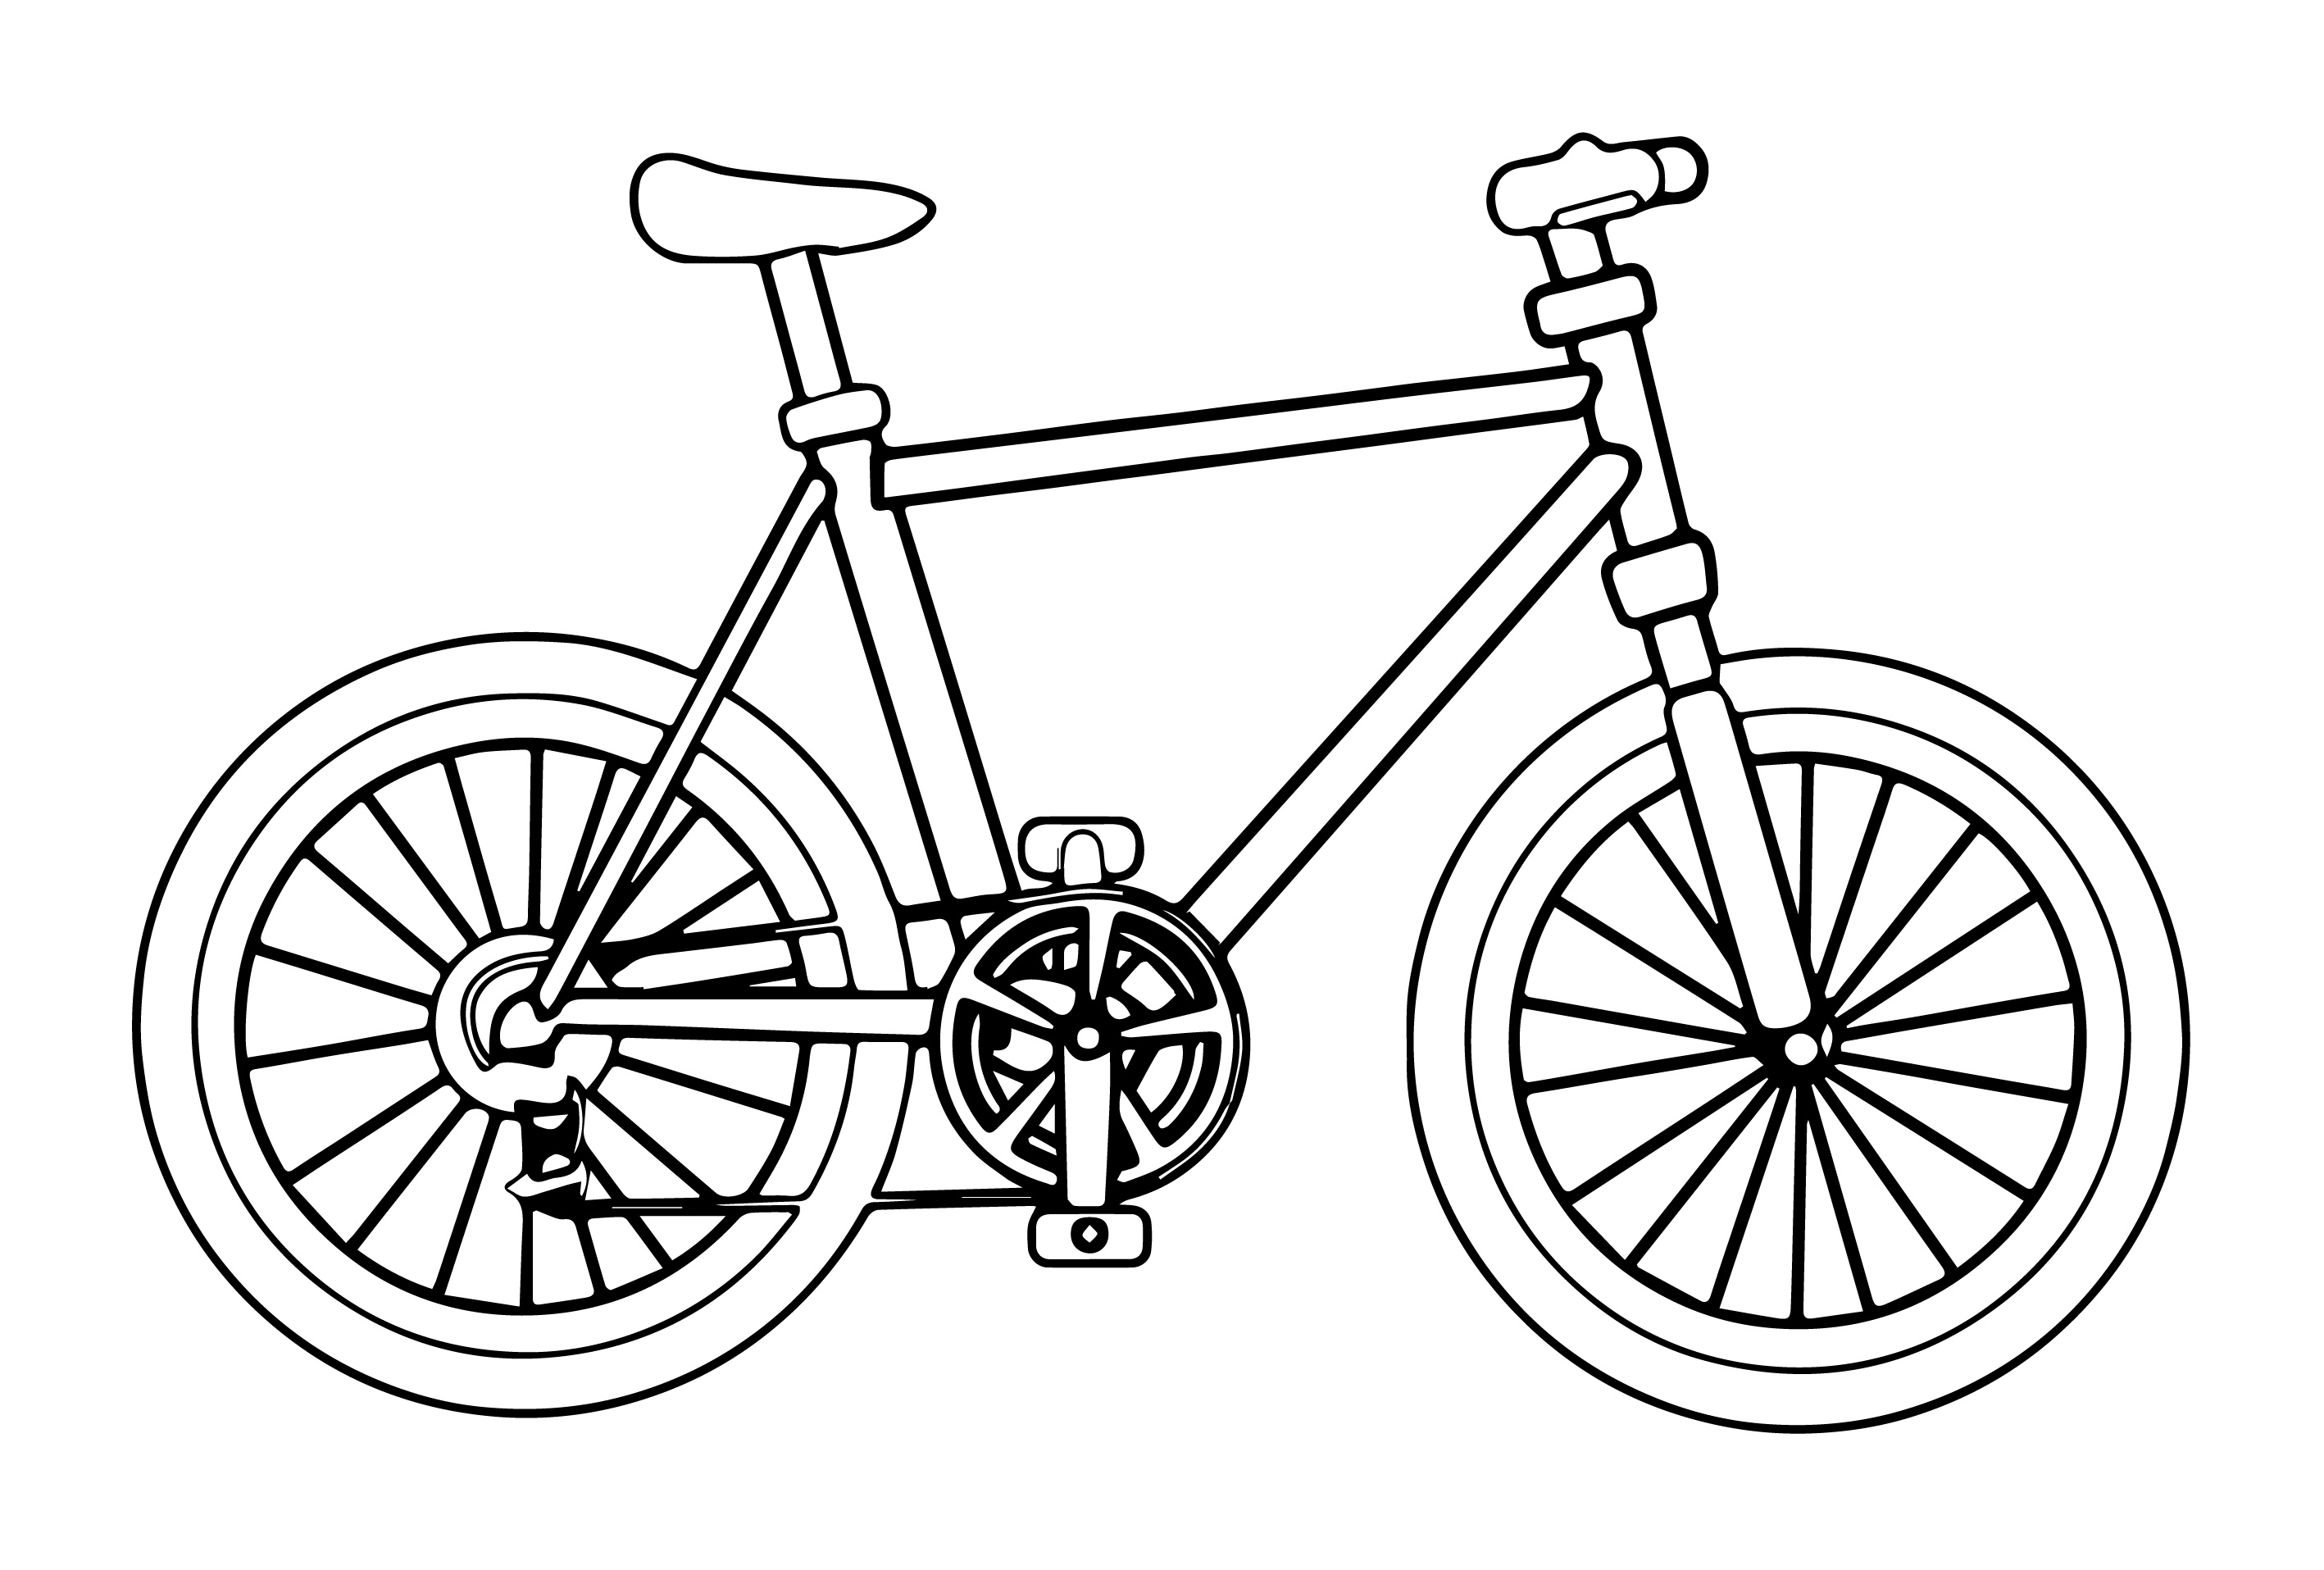 bike coloring page bicycle coloring pages by daniel free printables page coloring bike